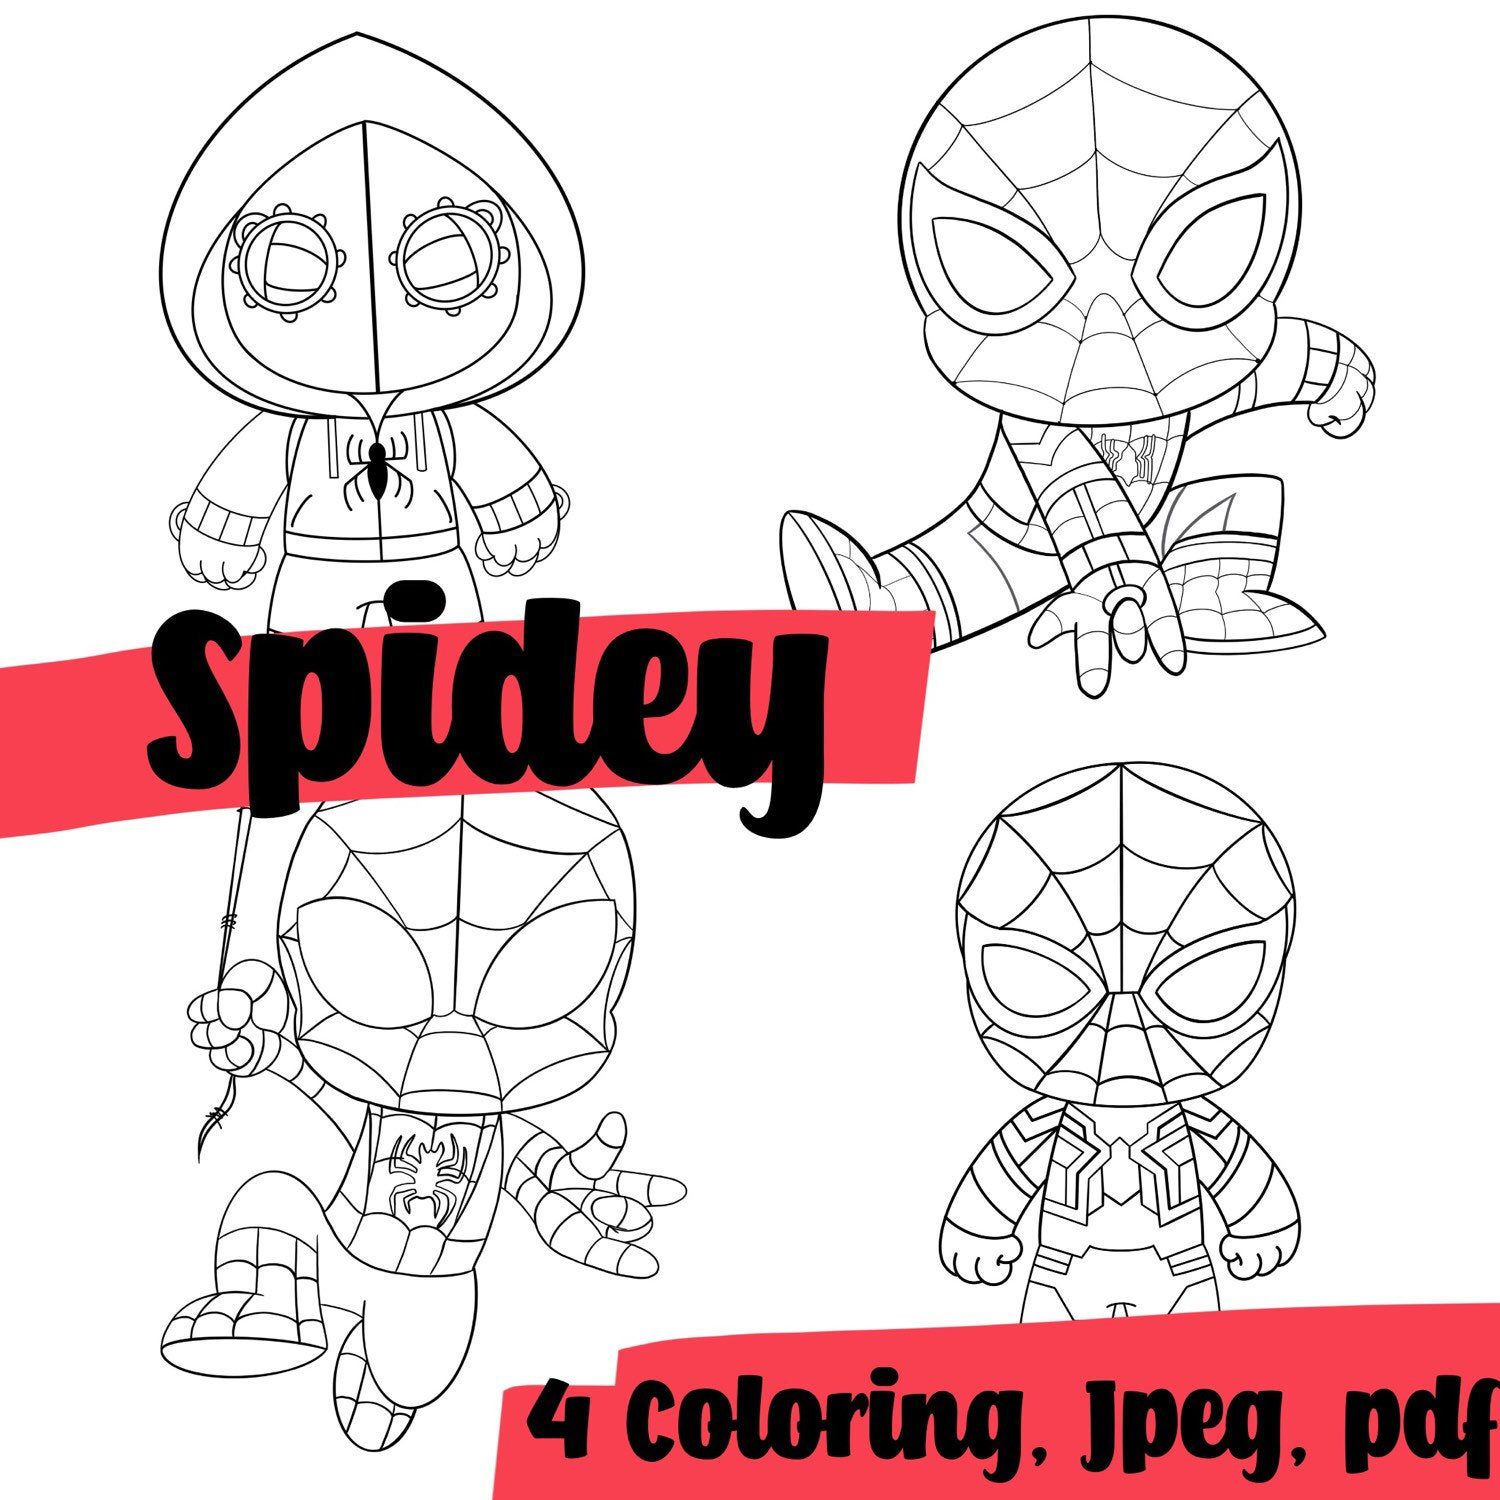 Coloring Pages Spider Man 4 Of Set Paper Game For Kids Etsy Paper Games For Kids Paper Games Spiderman